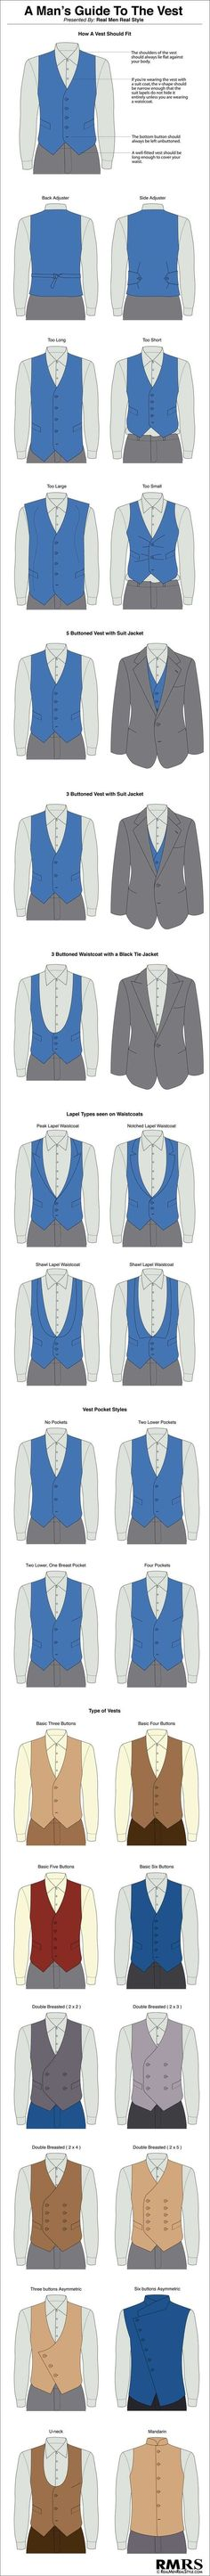 Gentlemen: #Gentlemen's #fashion ~ A Man's Guide To The Vest (Infographic).: